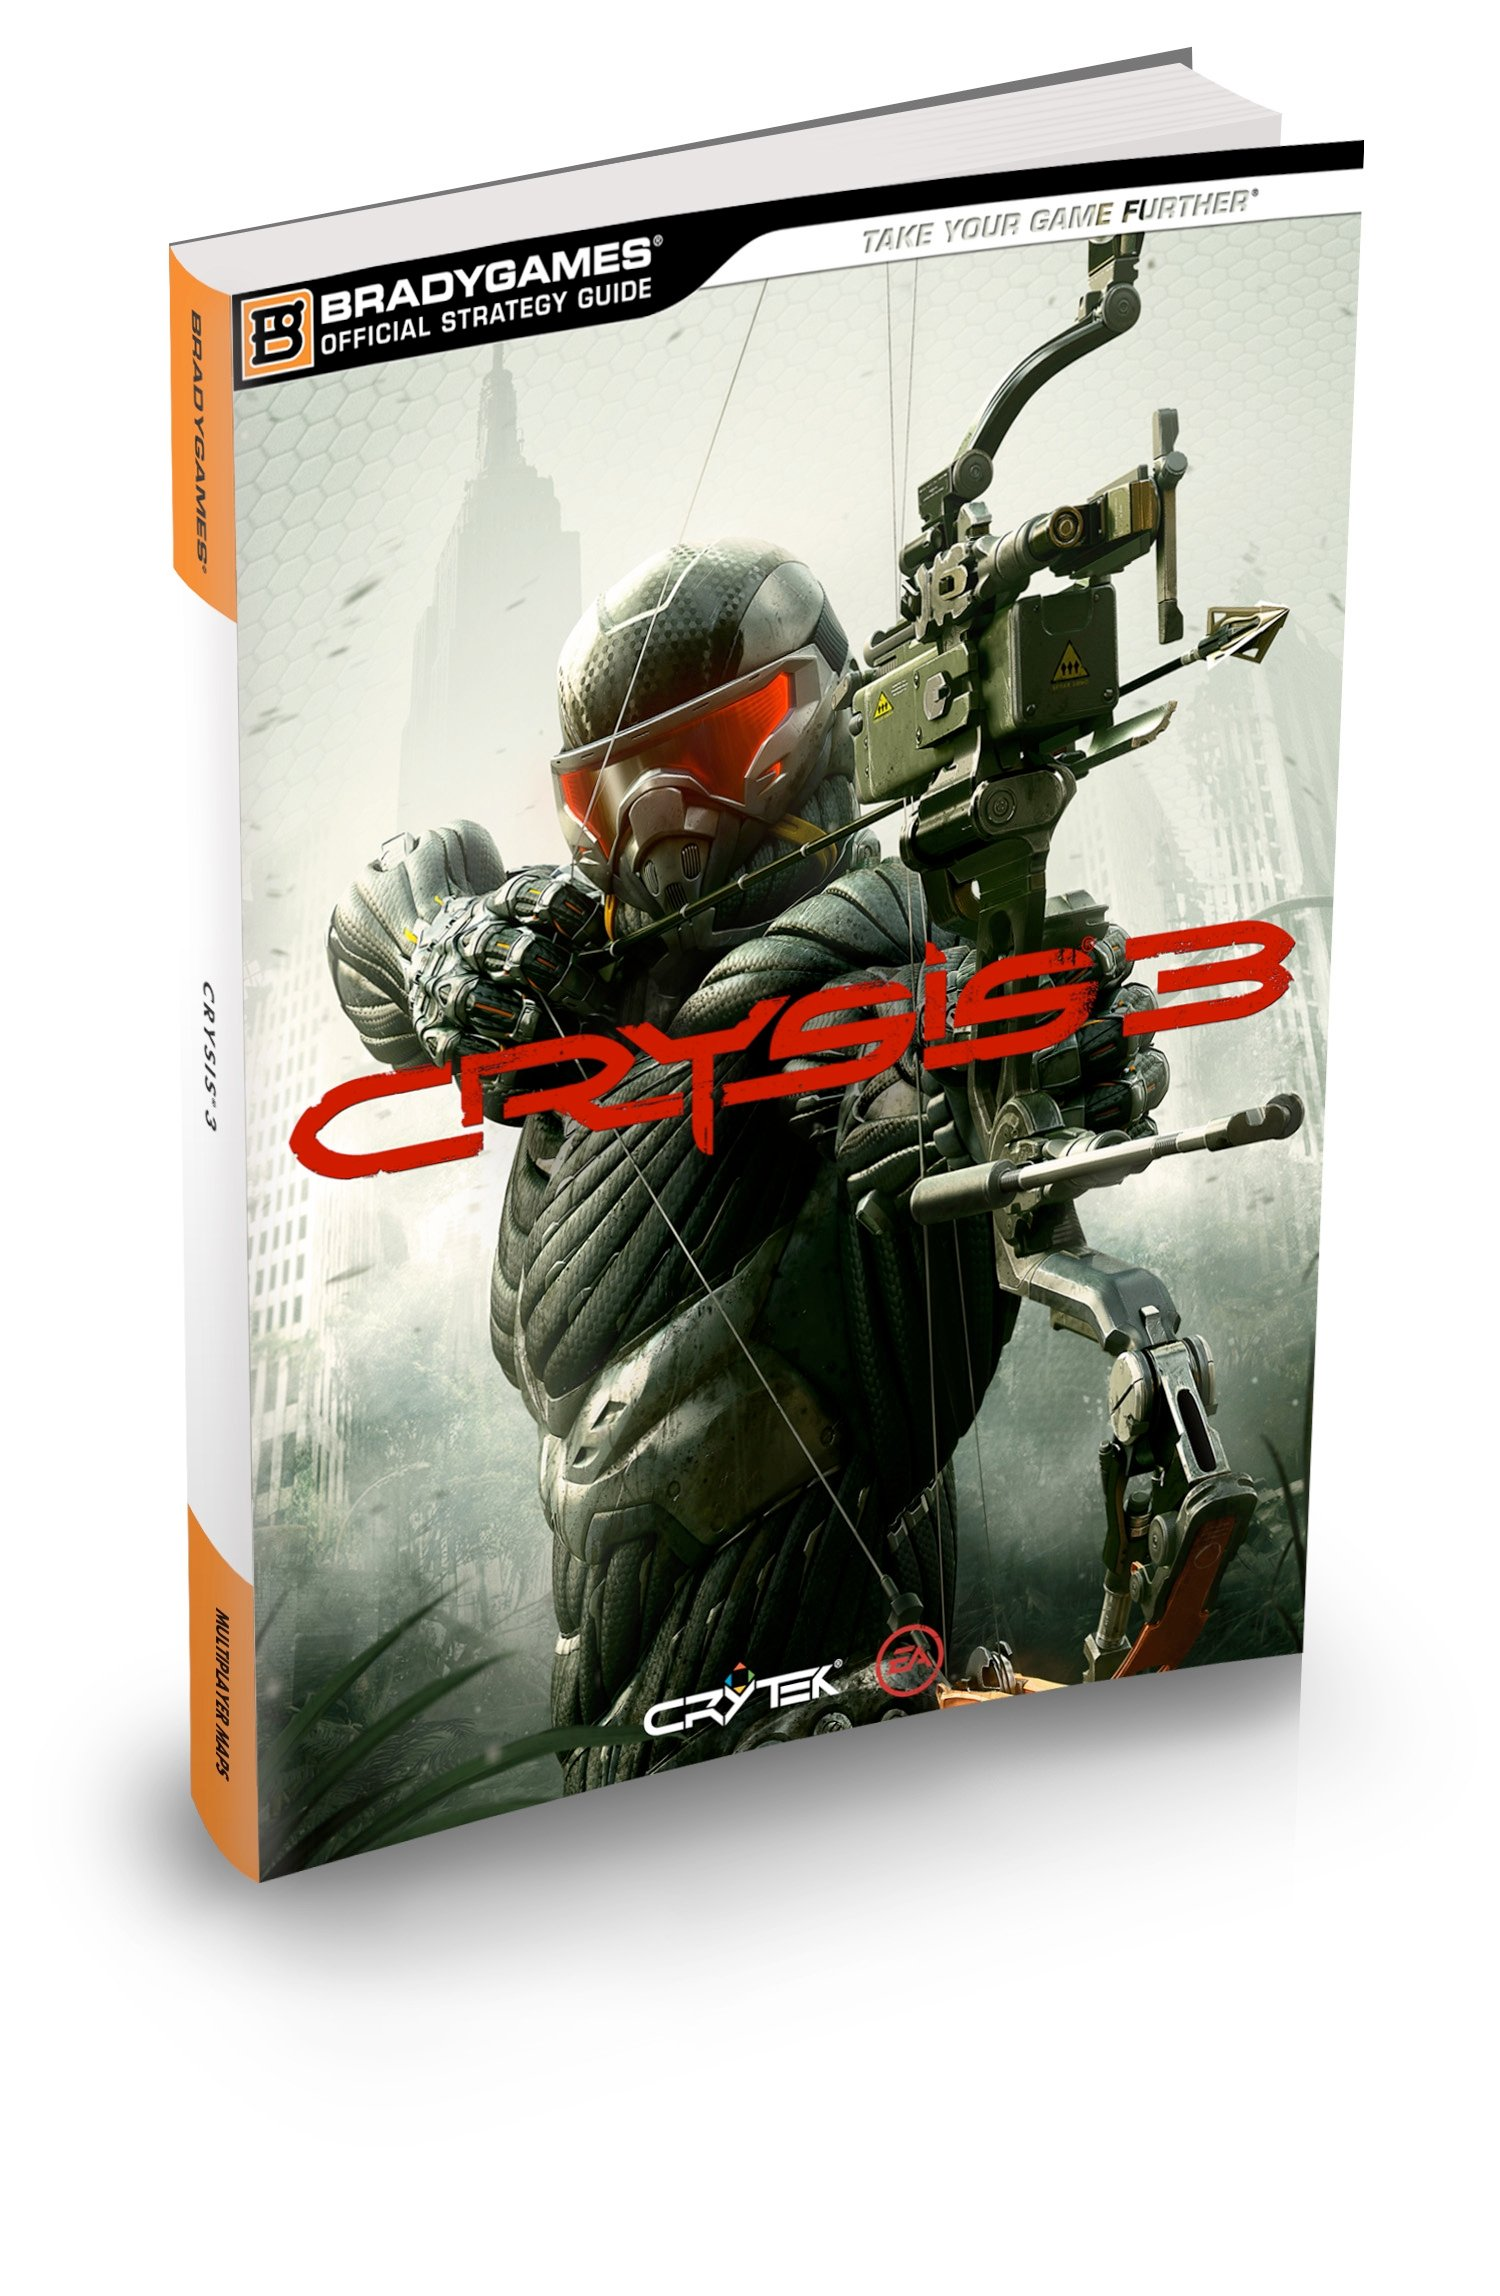 crysis 3 official strategy guide bradygames take your games further rh amazon com Galaxy of Heroes Strategy Guide ING Official Strategy Guide